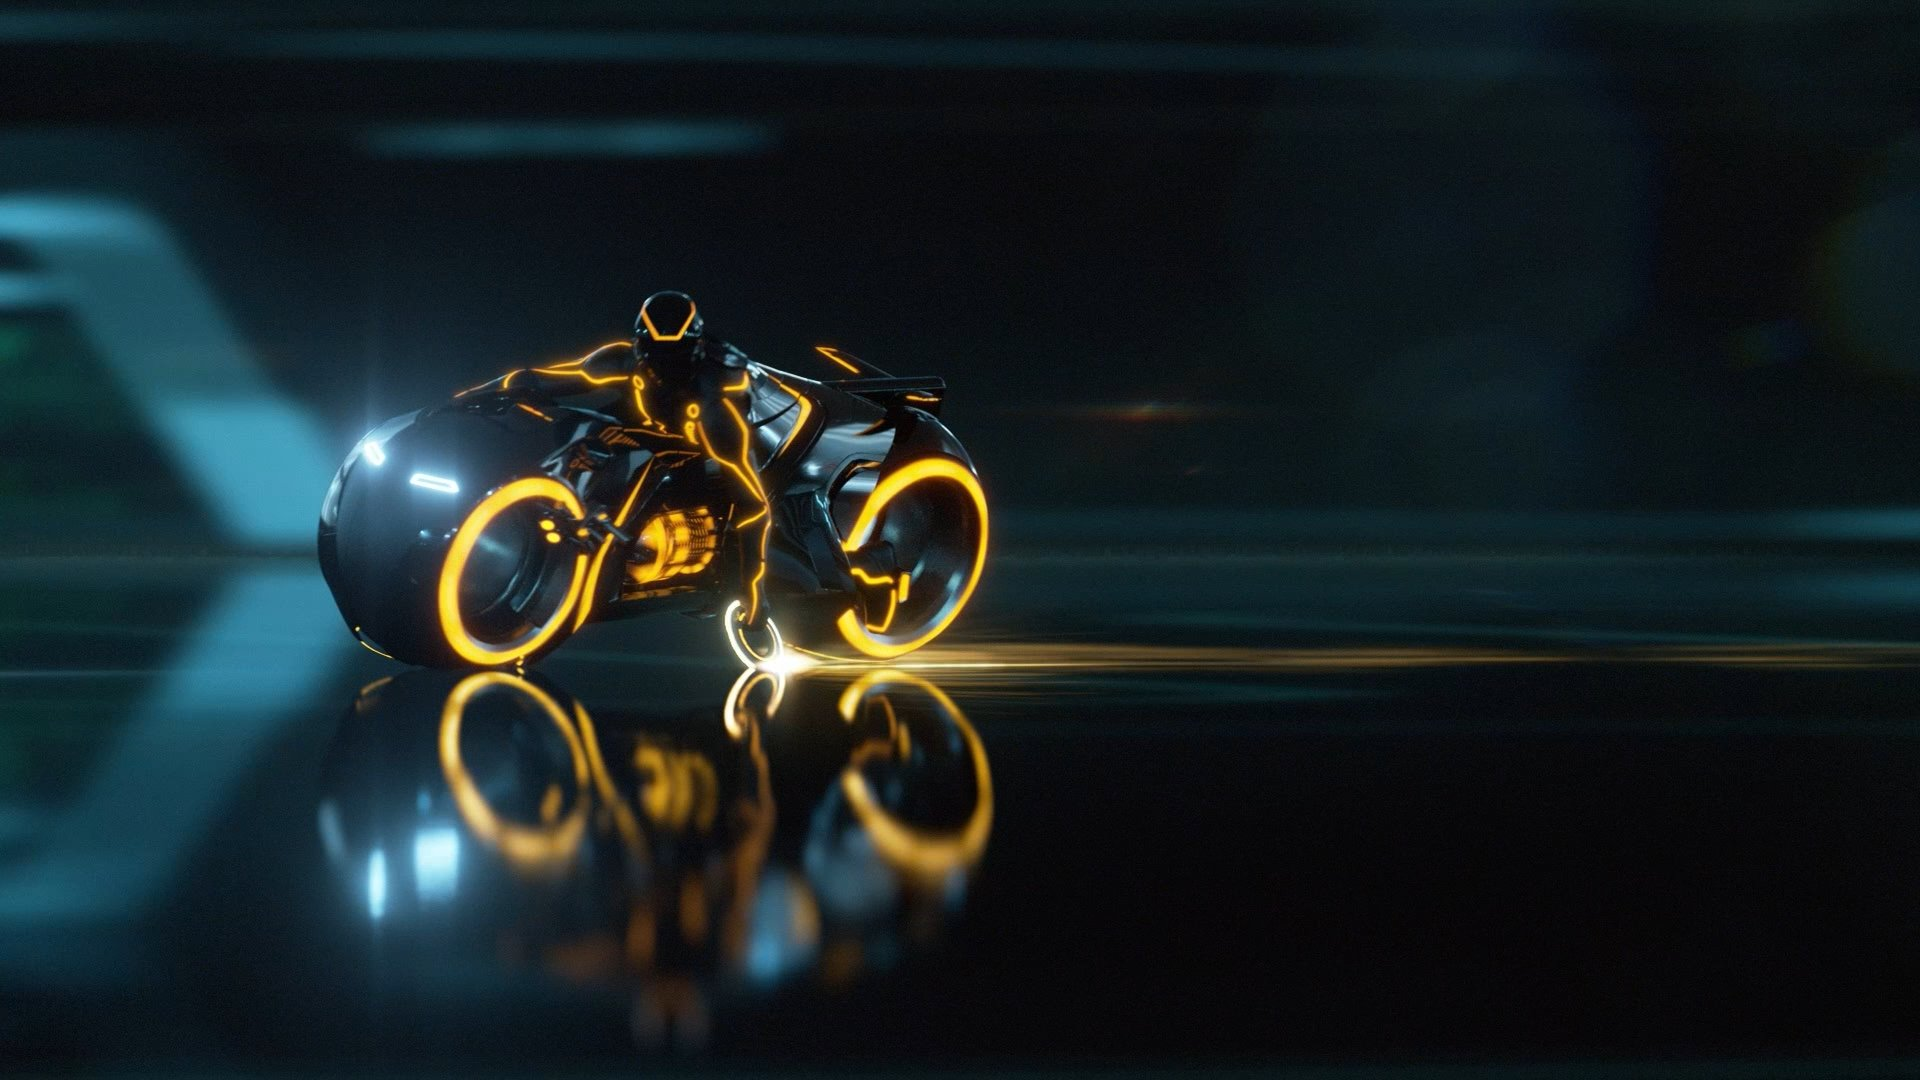 Tron Wallpaper 1920x1080